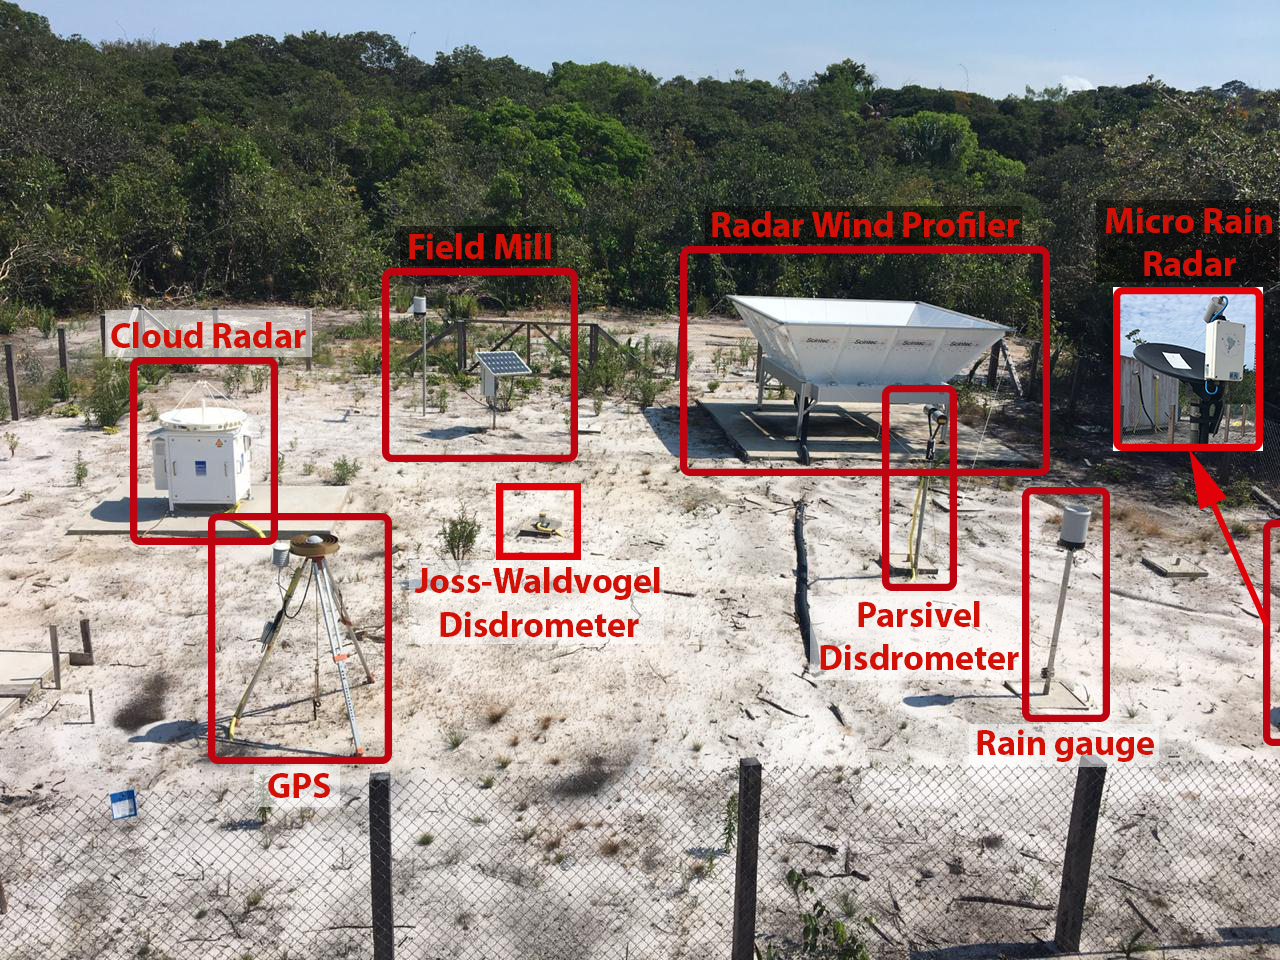 These are the instruments installed in the Campina site. On the left is the MIRA-35C cloud radar.